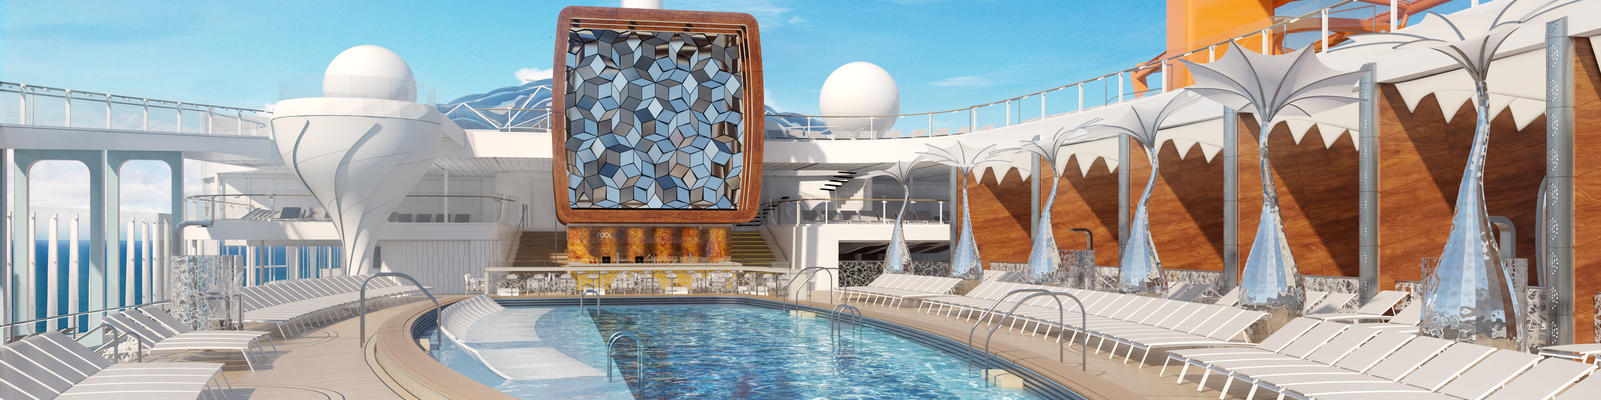 The Pool Deck on Celebrity Edge (Photo: Celebrity Edge)